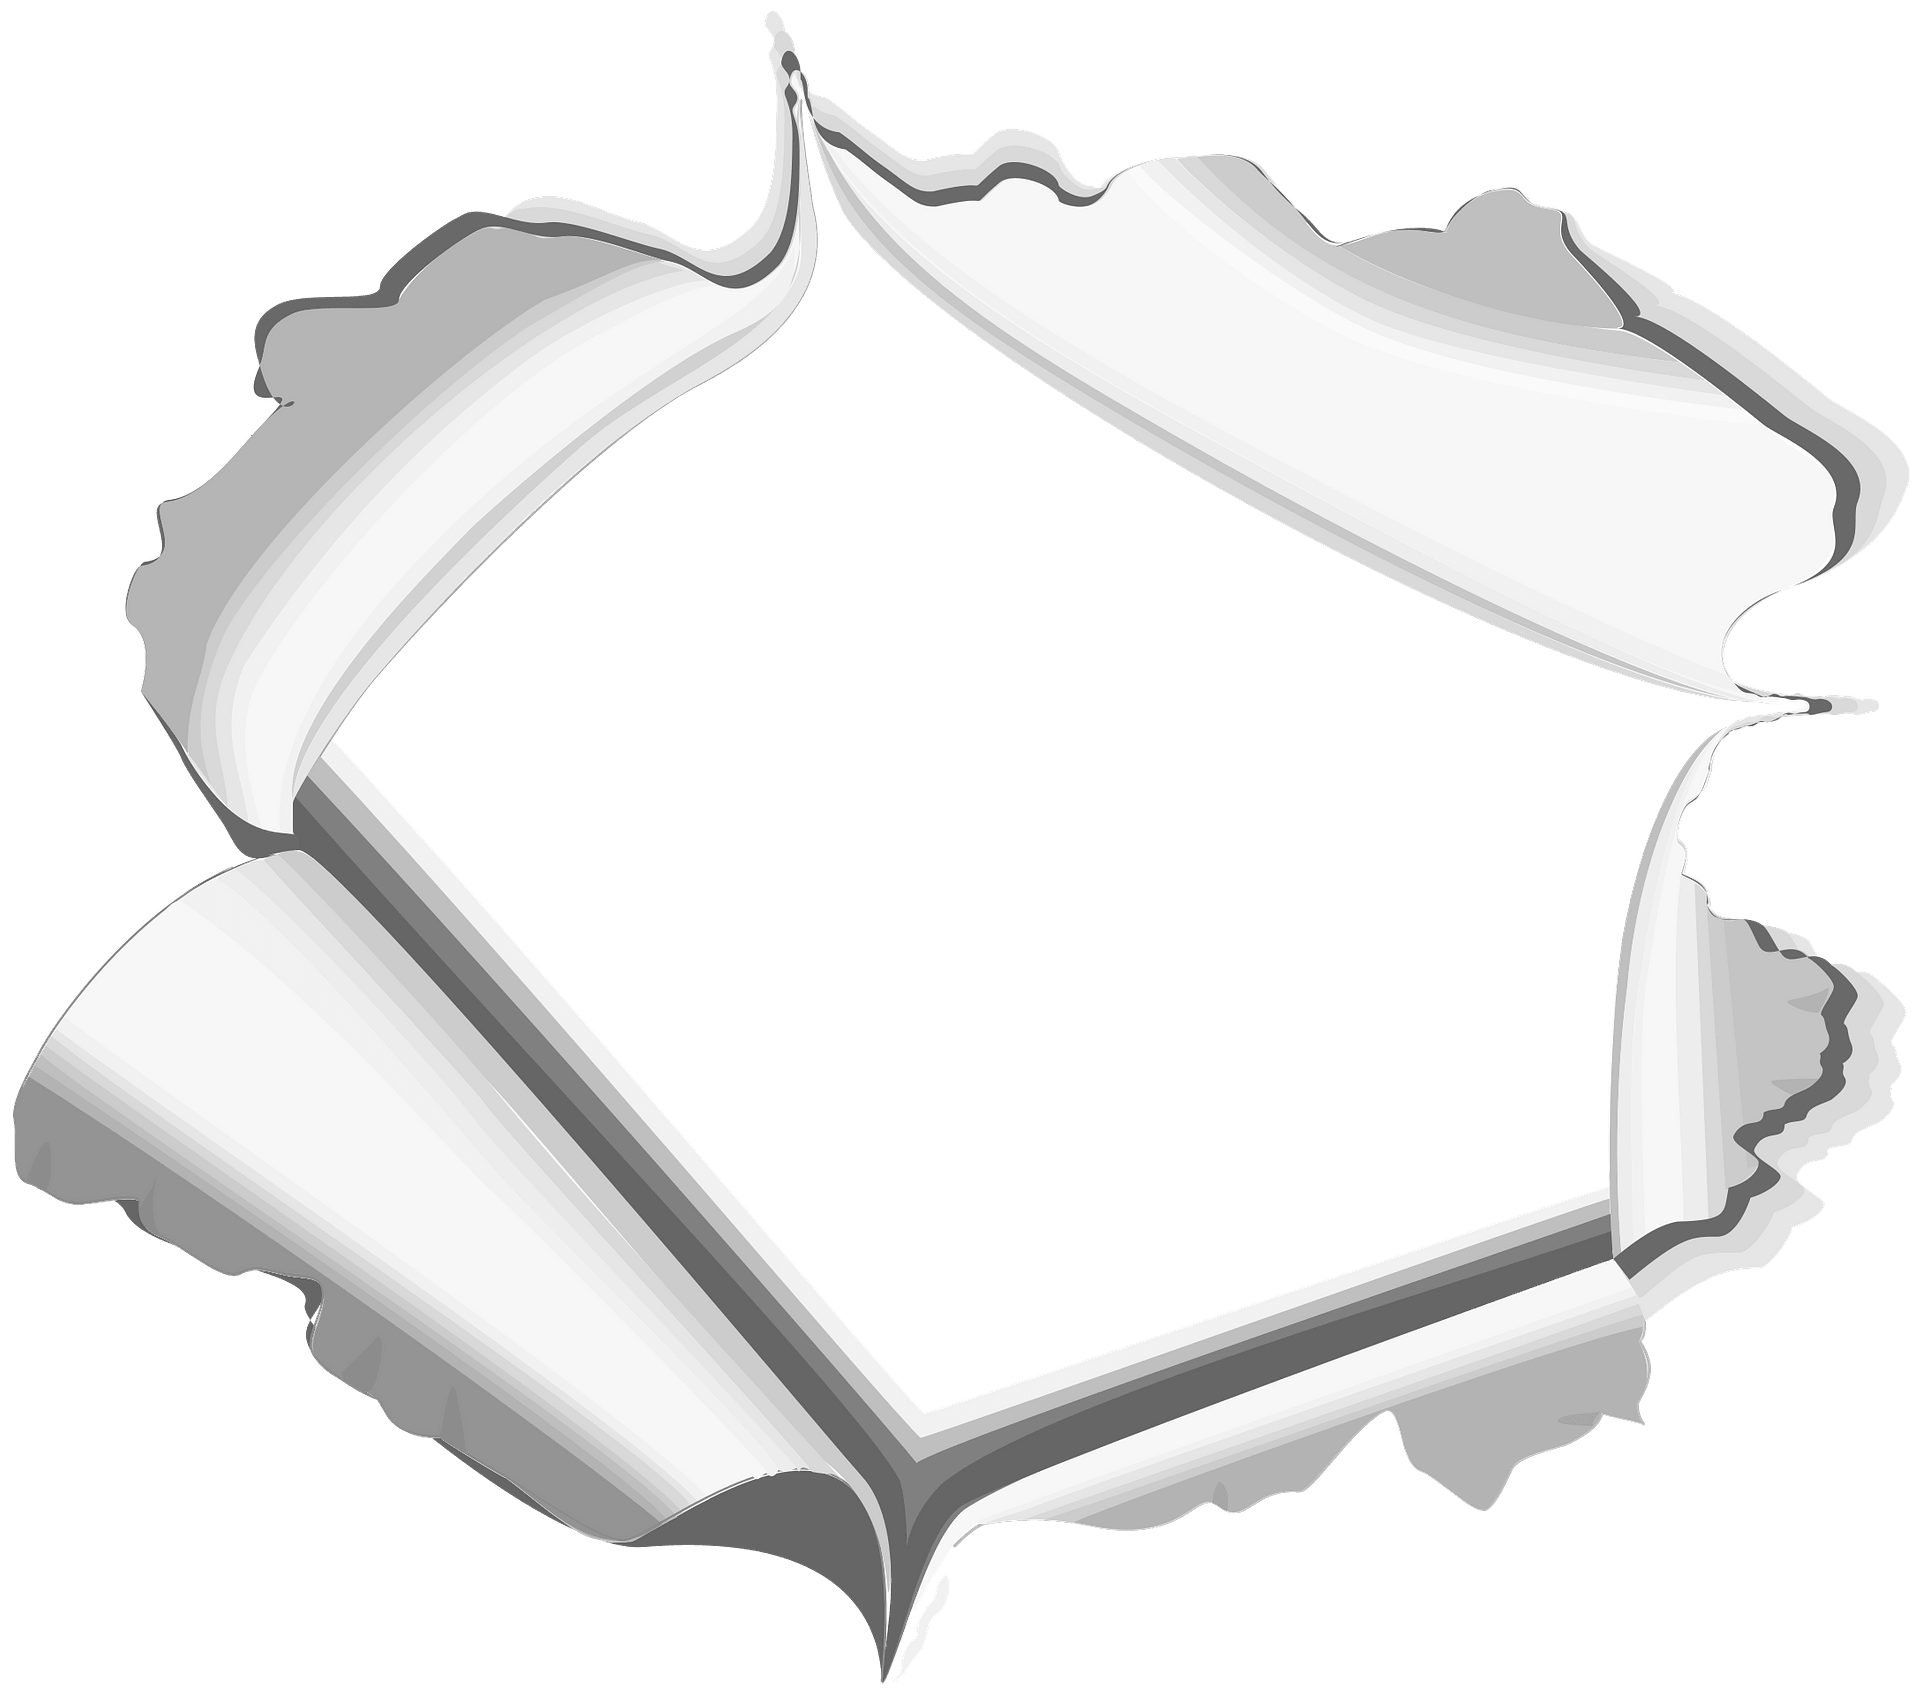 Big Image - Torn Page Png Clipart (#749358) - PinClipart